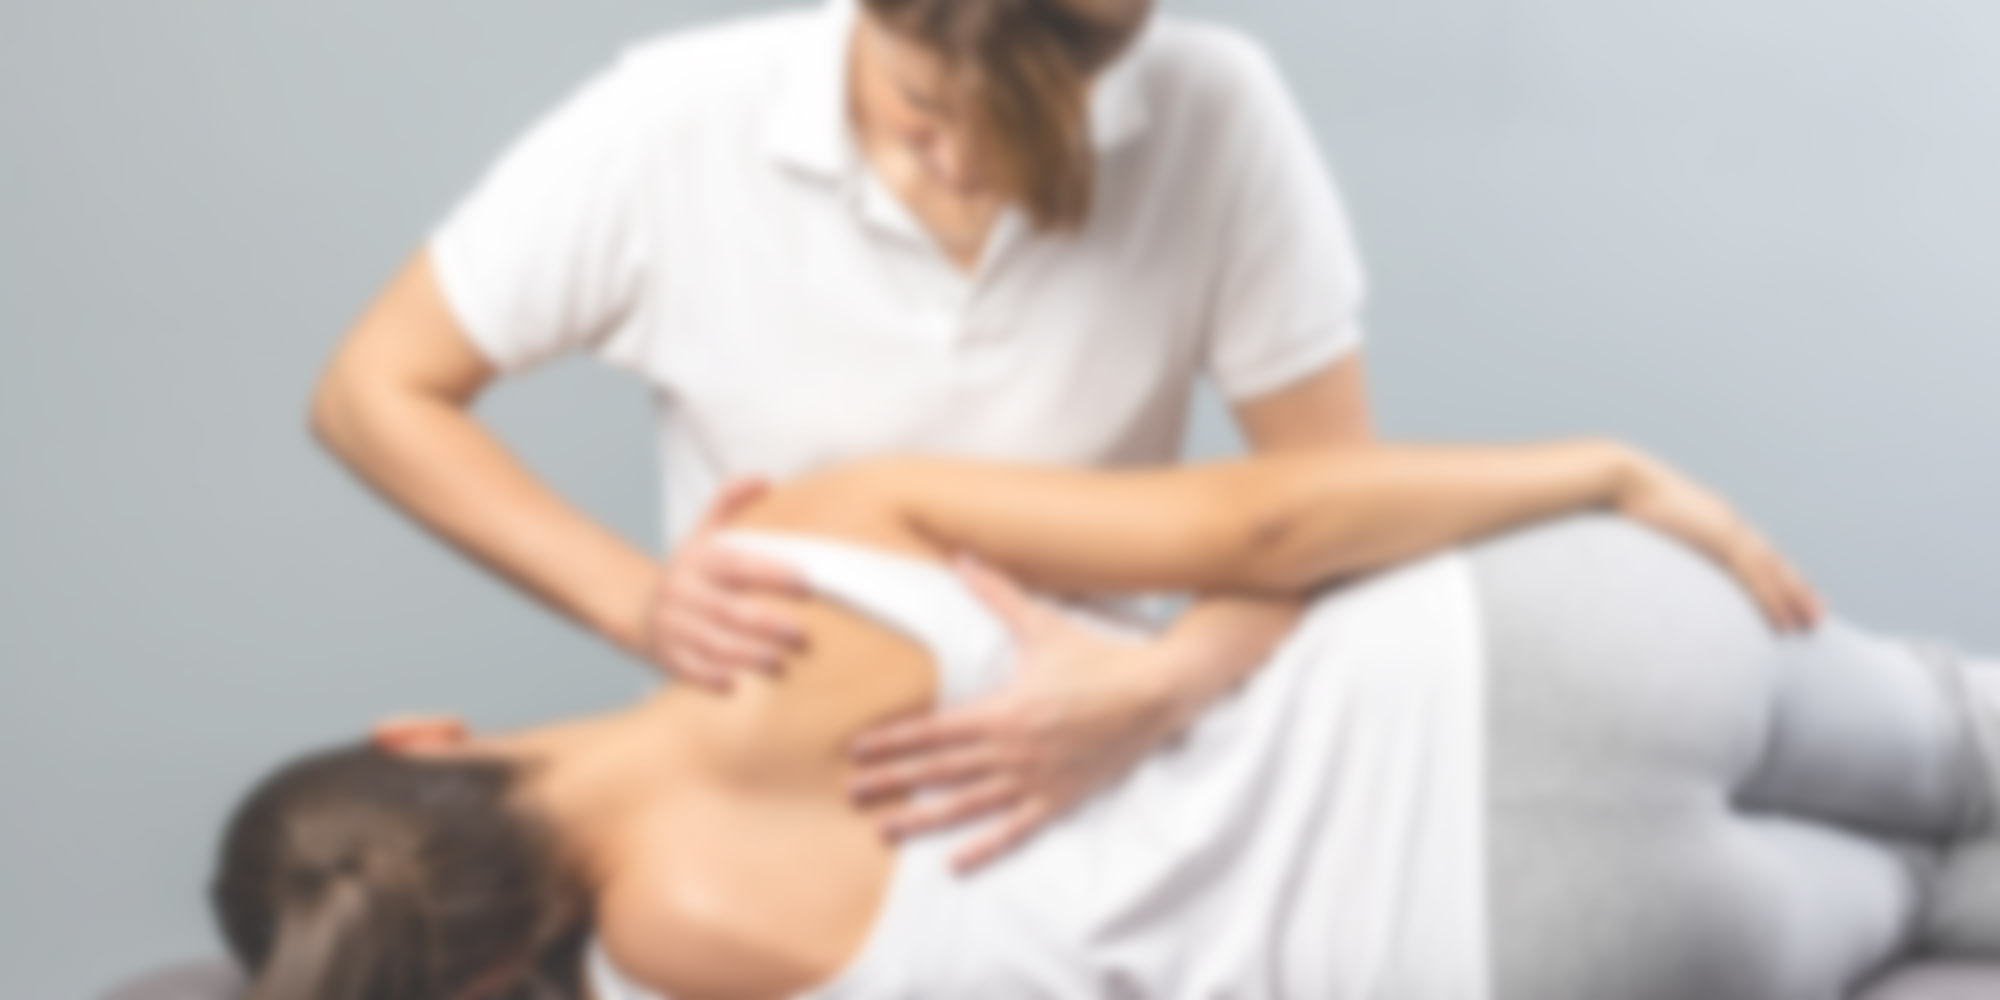 osteopathic manual practitioner immigration ban